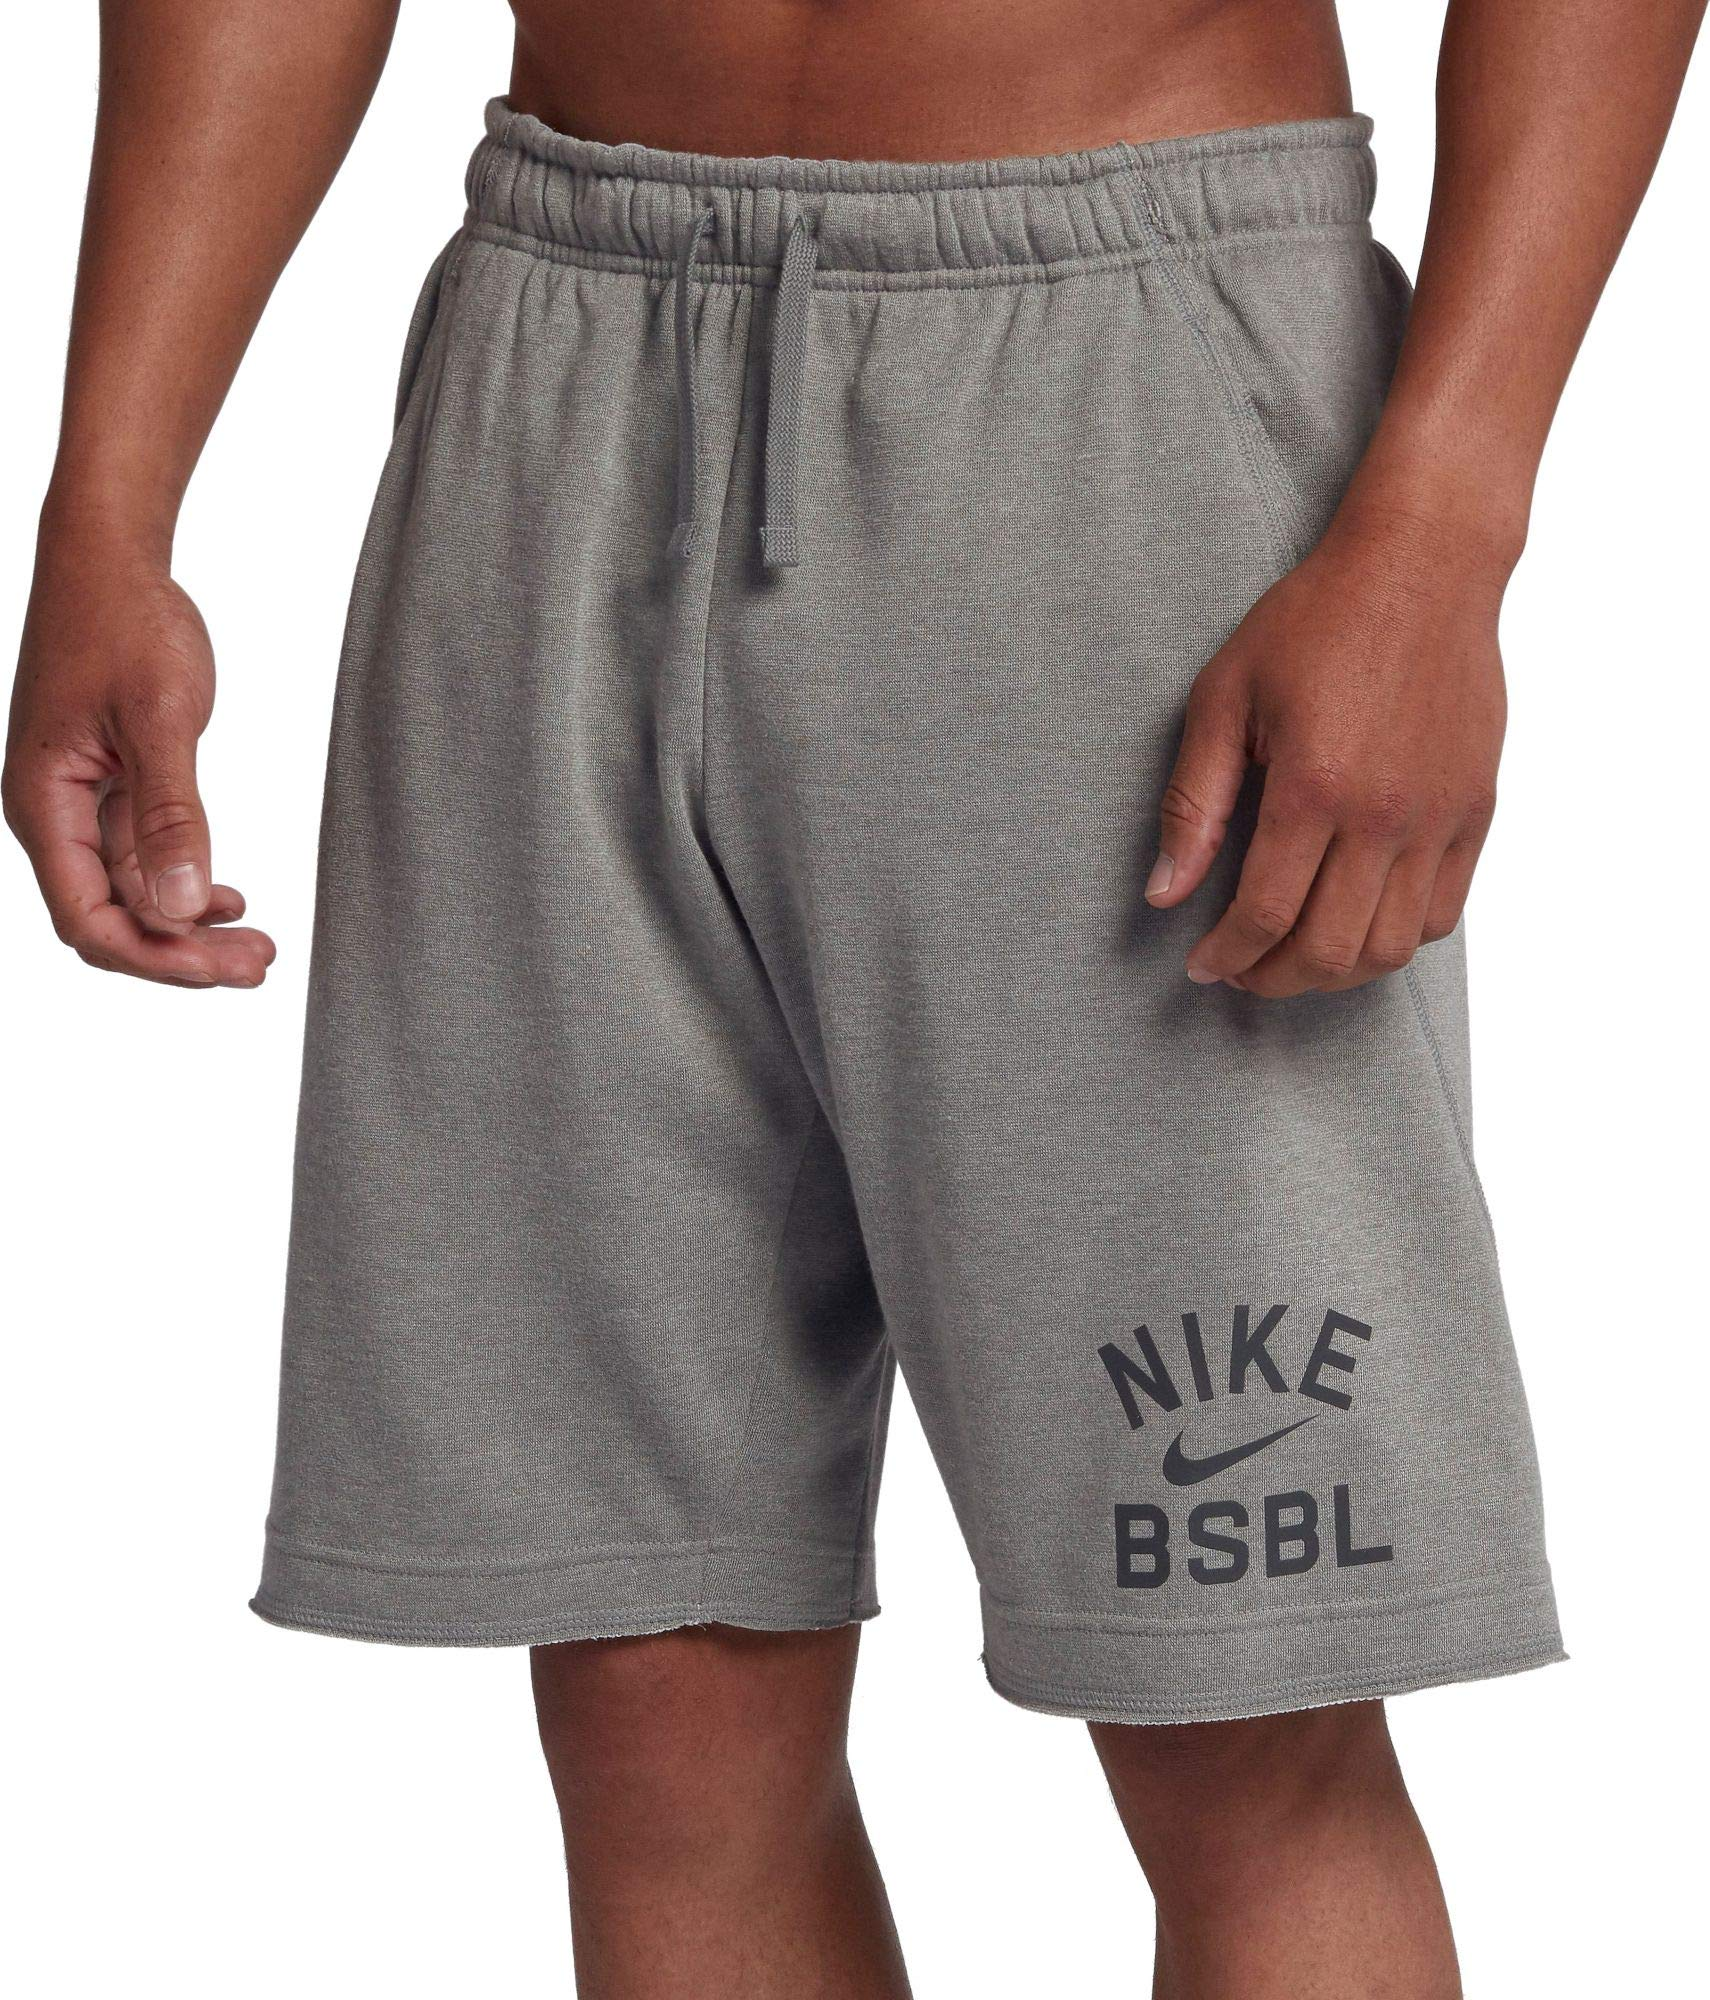 Nike Men's Flux Baseball Shorts (Dk Grey Heather, X-Large) by Nike